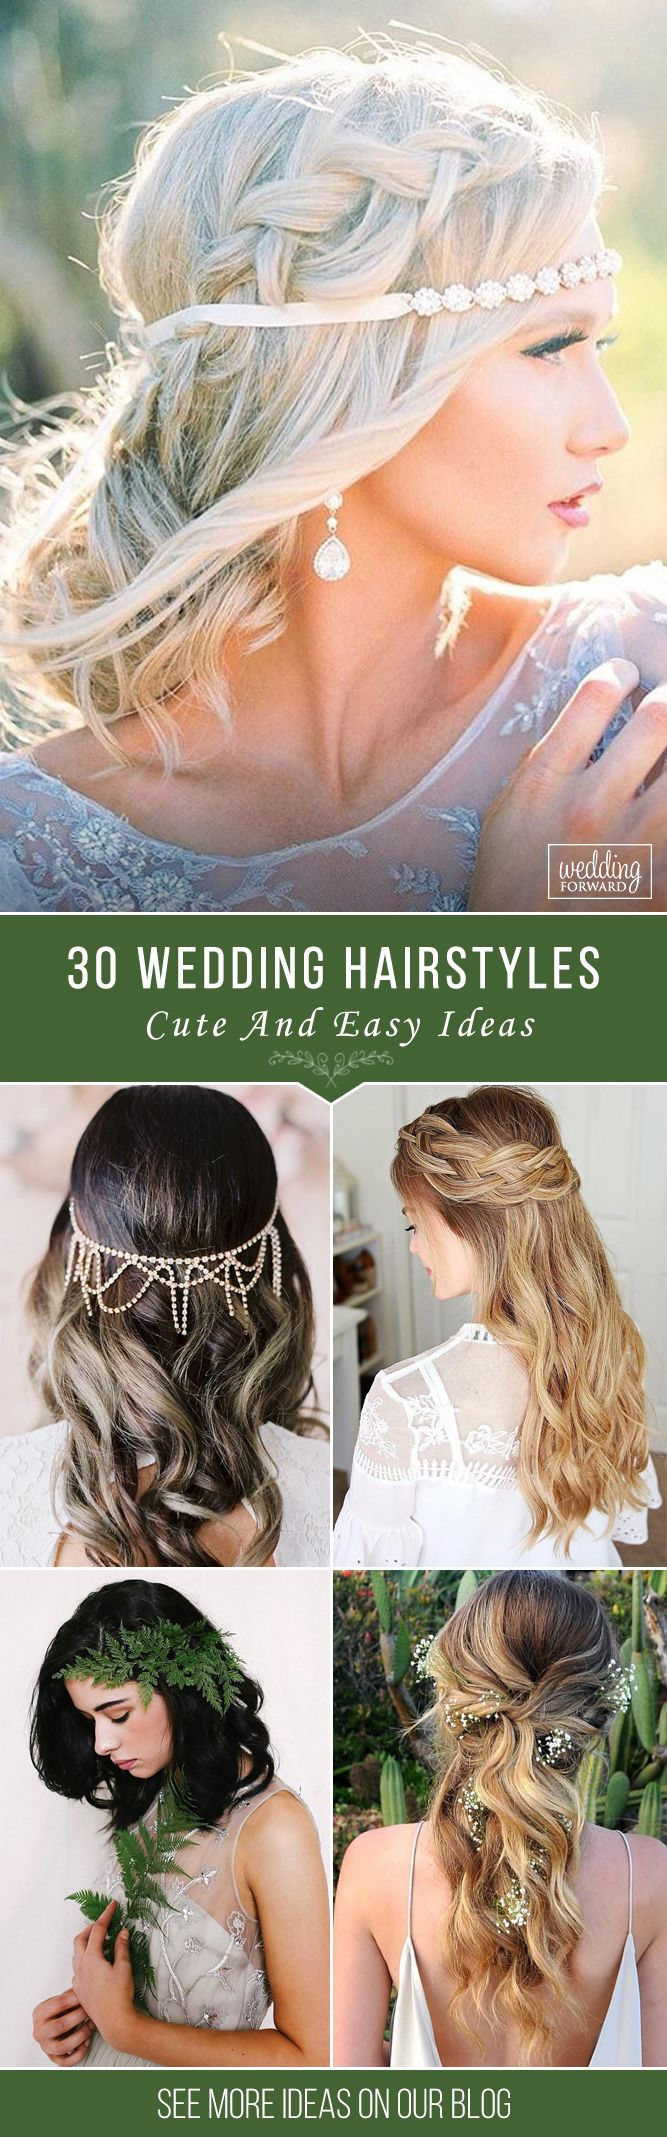 30 Cute And Easy Wedding Hairstyles  ❤ We propose our collection of easy wedding hairstyles. Even your bridesmaid could create such a beautiful hairstyles, you just need some time to prepare. See more: http://www.weddingforward.com/easy-wedding-hairstyles/